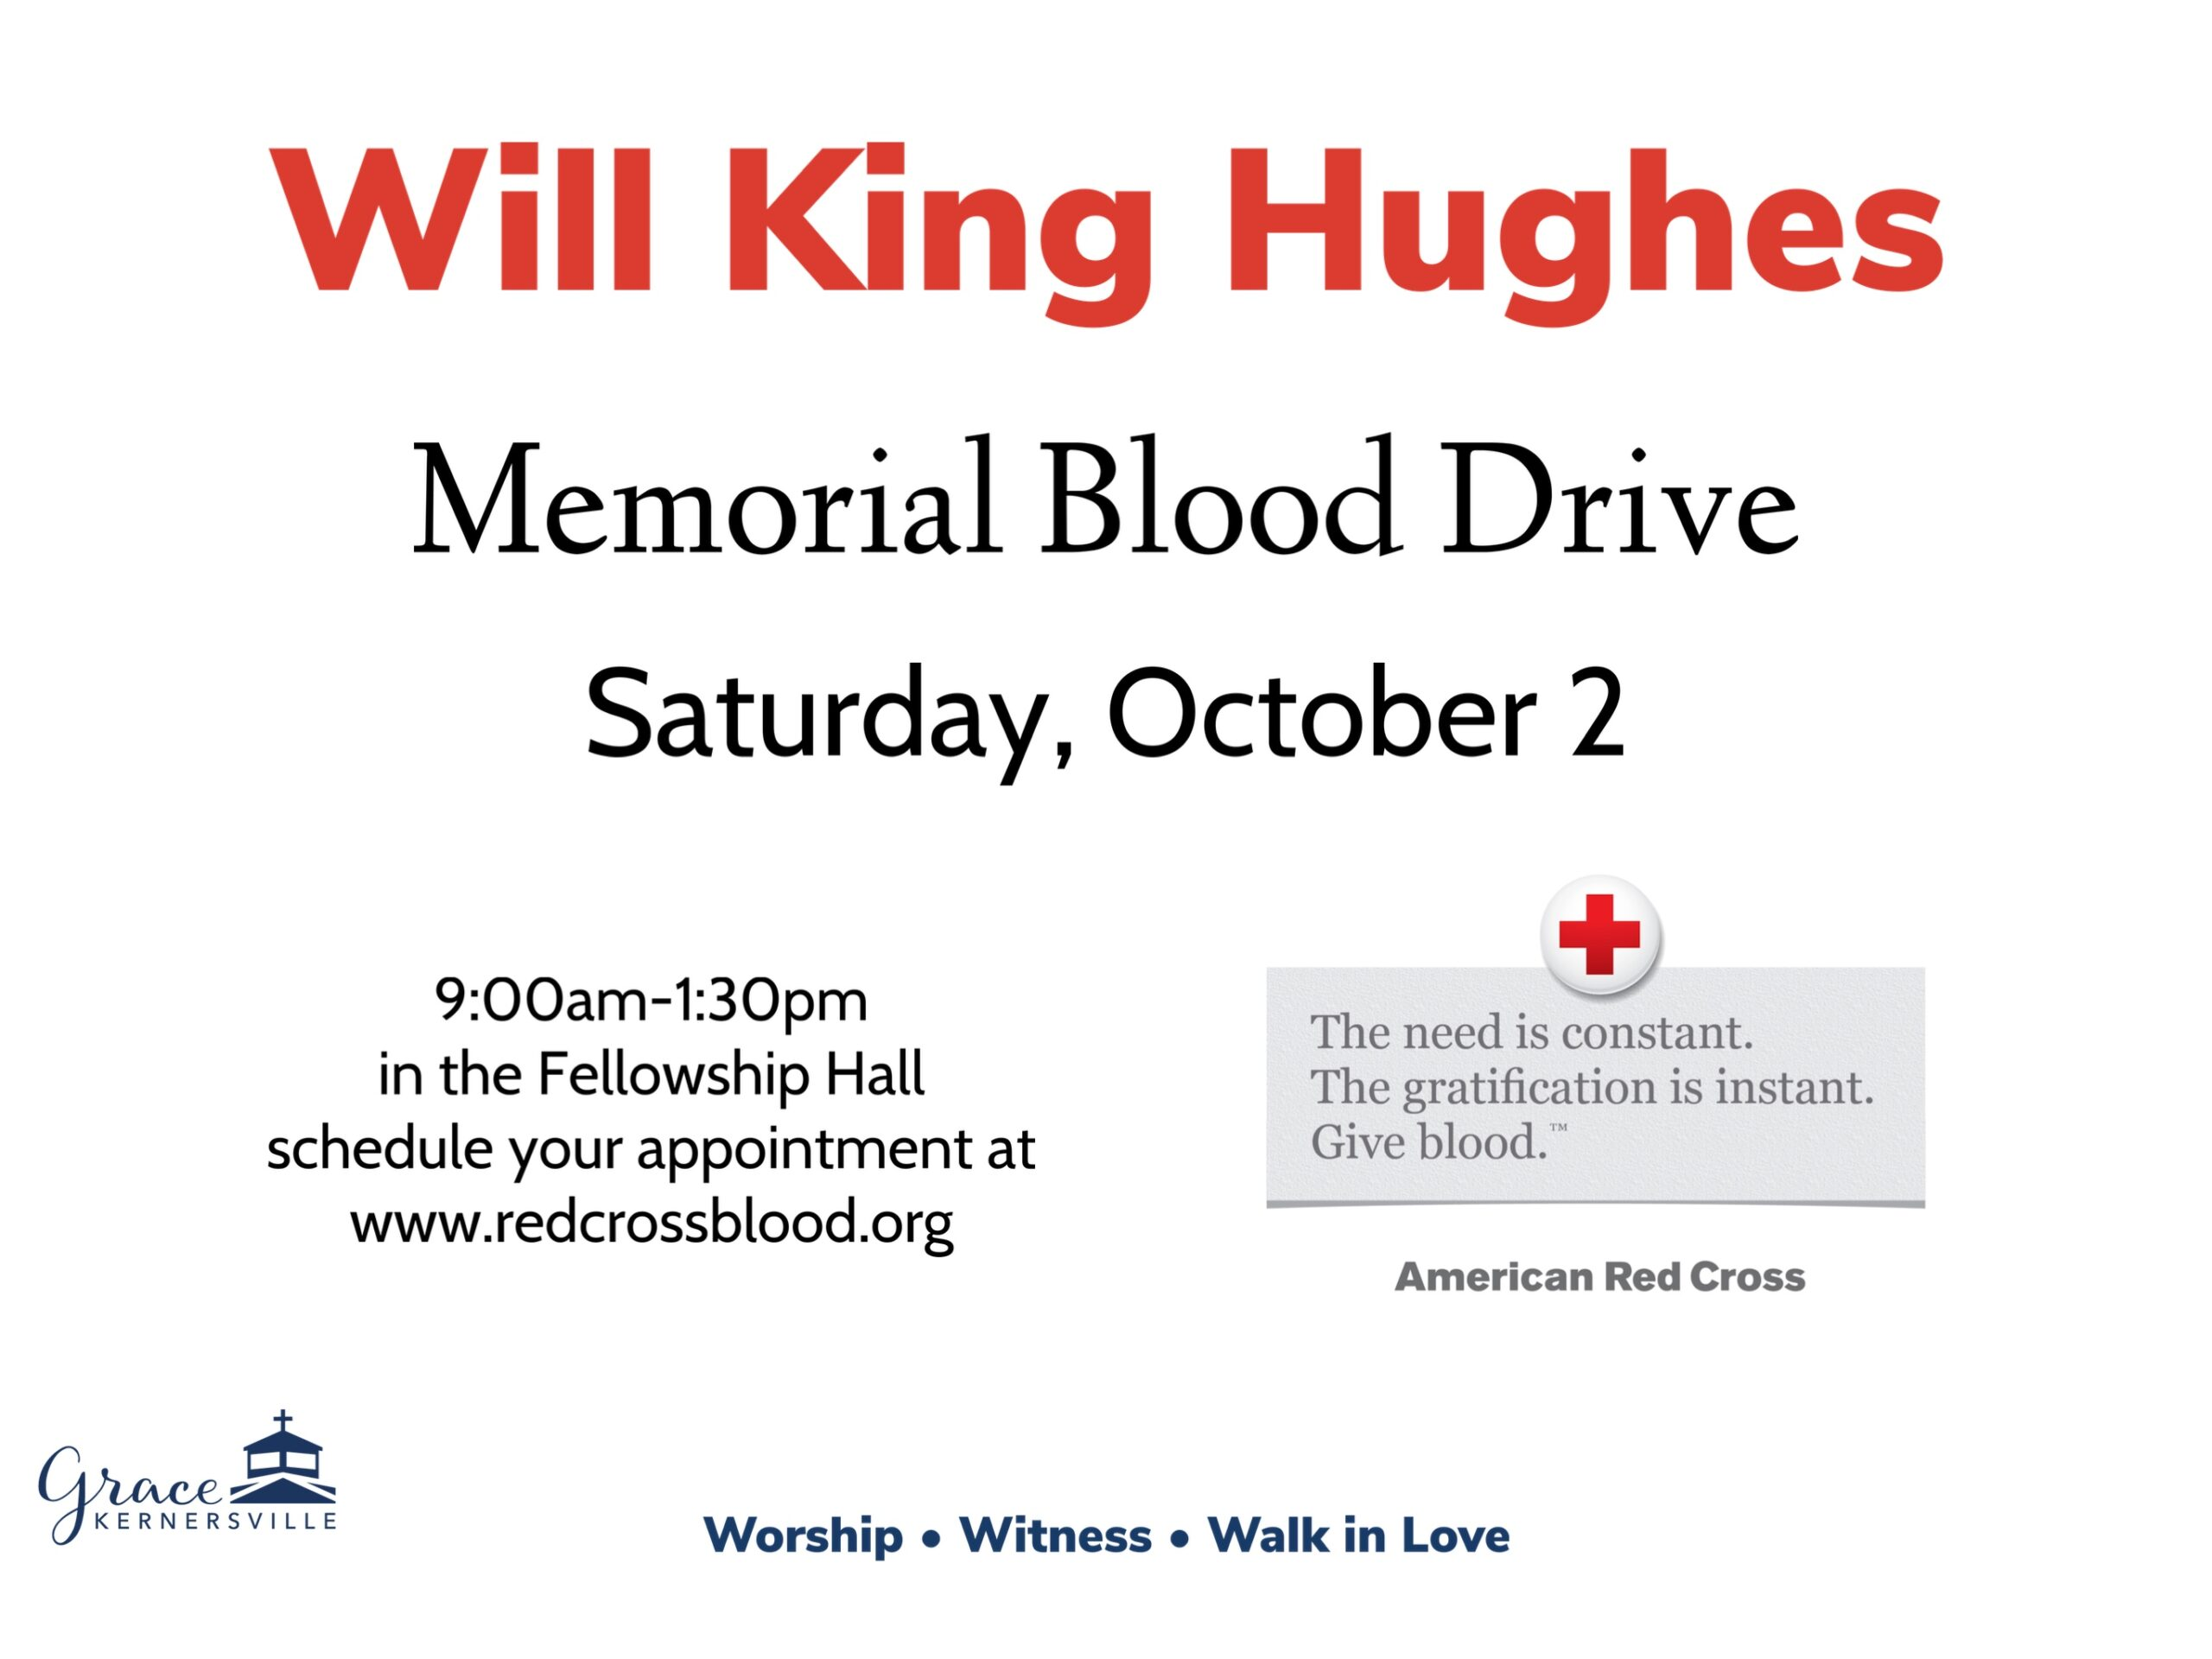 Will King Hughes Memorial Blood Drive